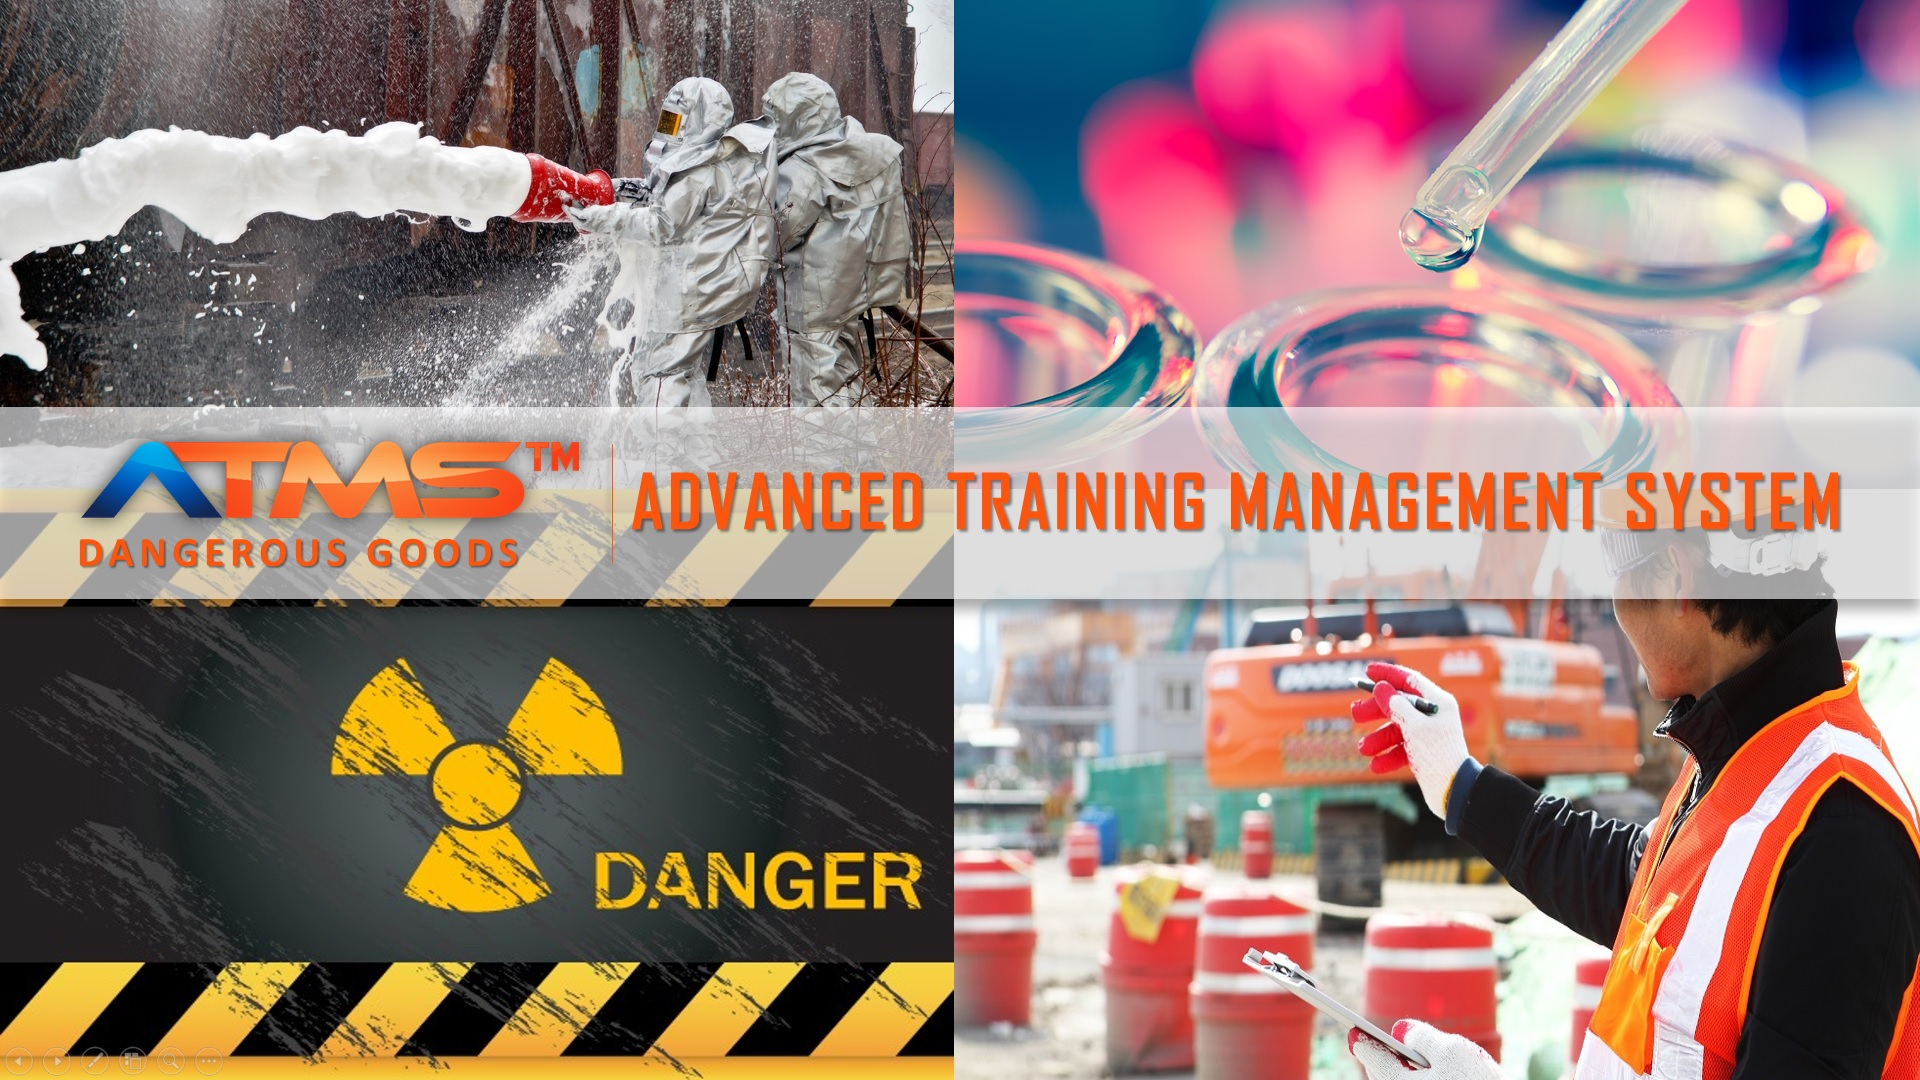 Dangerous-Goods-Training-System-Slide-1-1